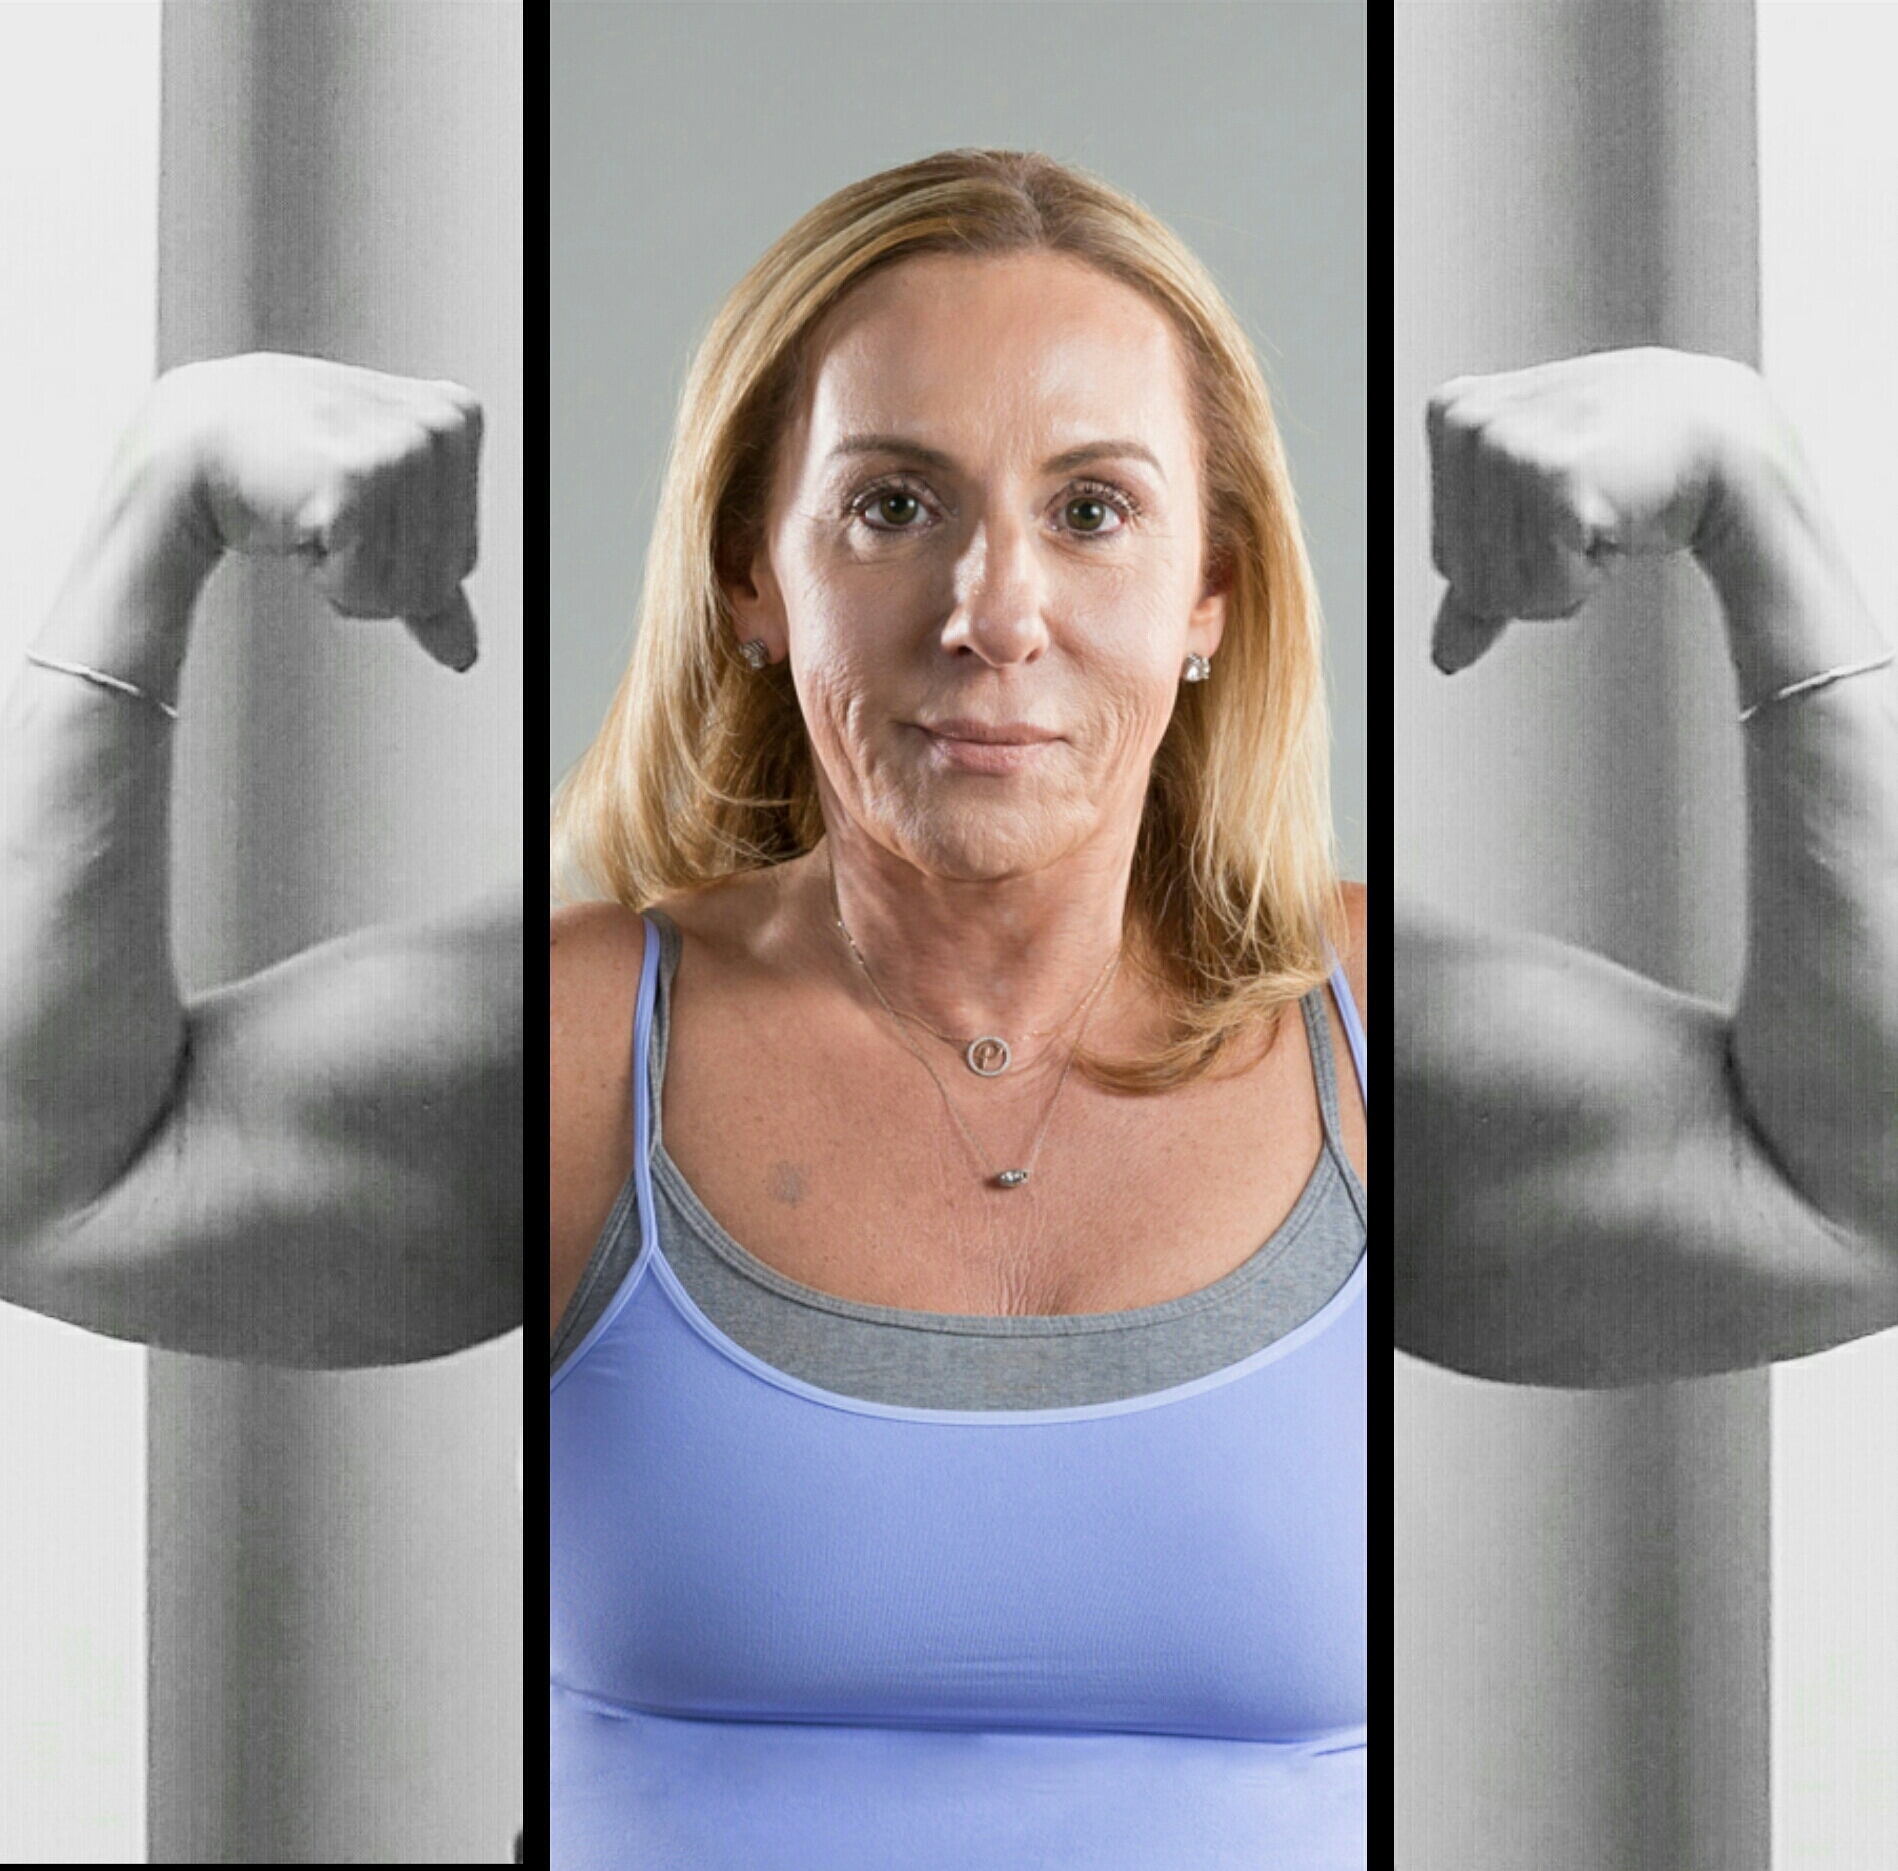 follow-phyllis-how to sculpt & tone over 50 arms